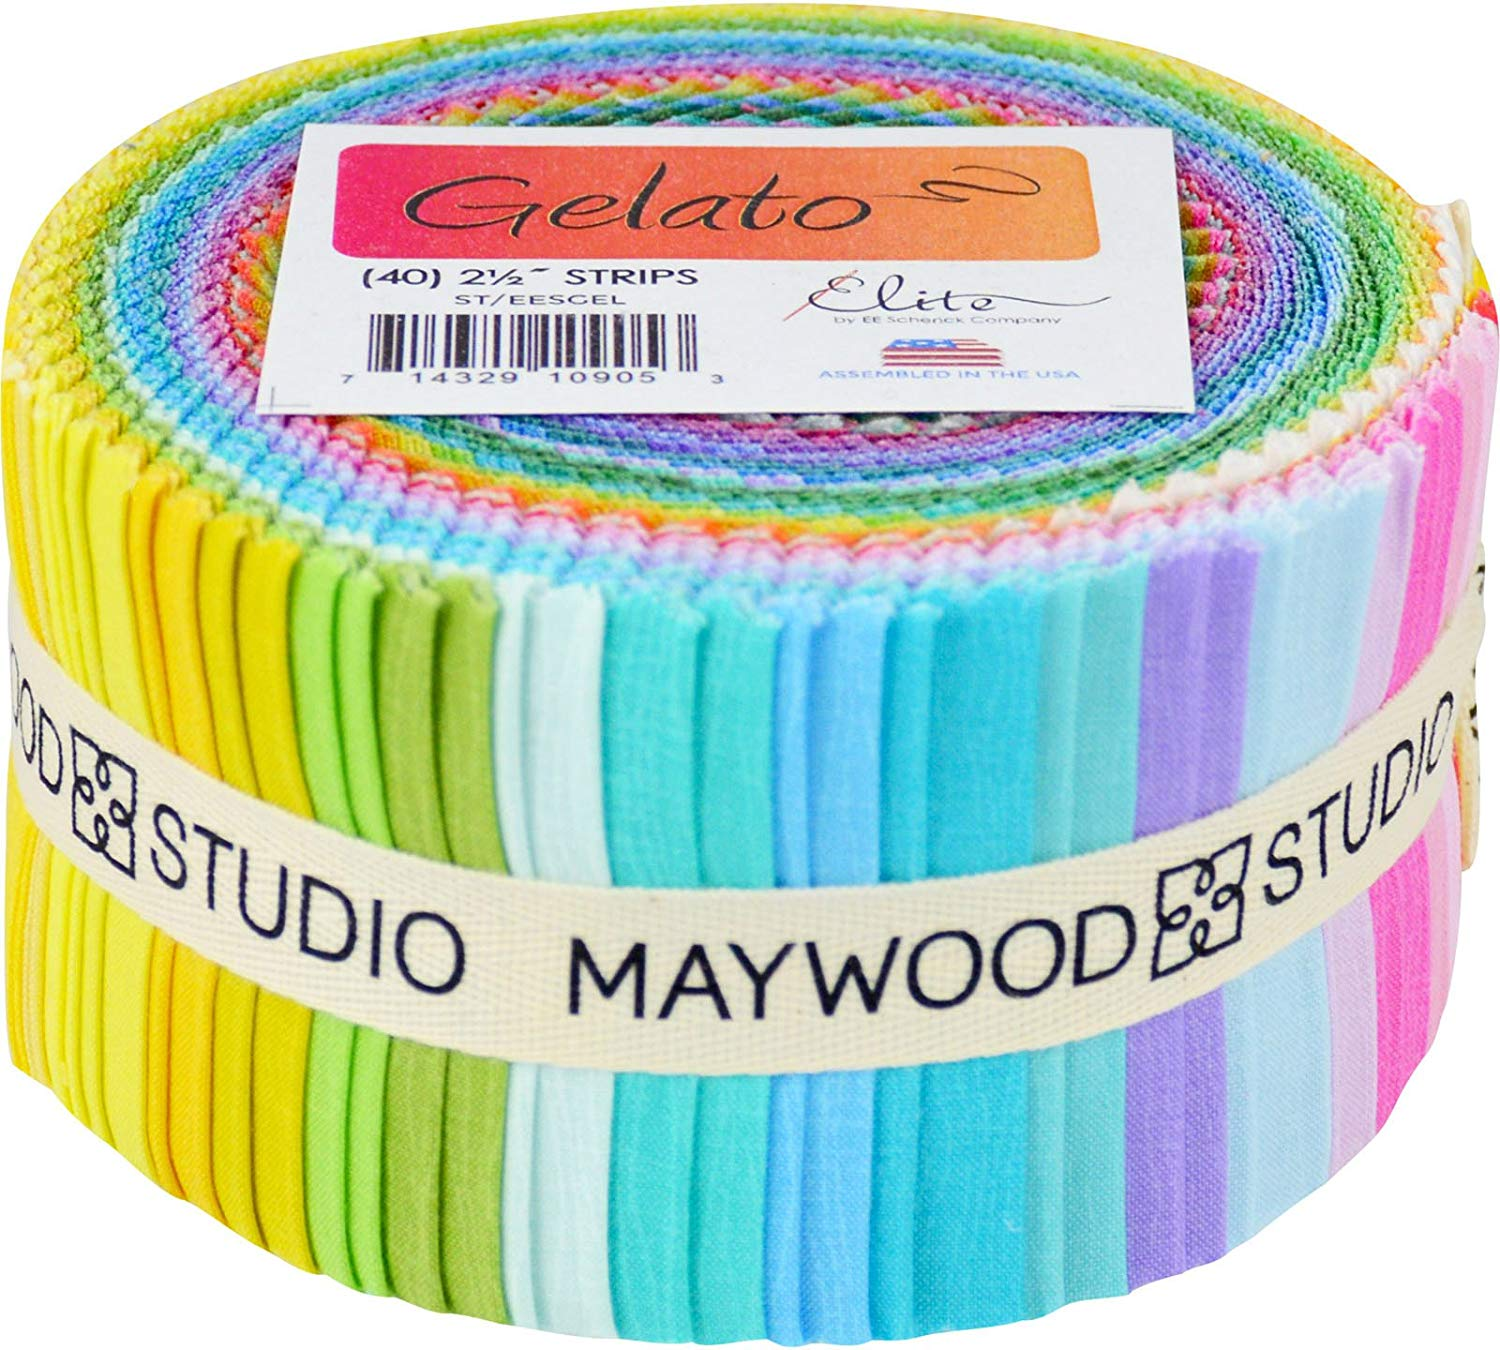 Gelato Strips by Elite; 40 2.5-inch Strips - Maywood